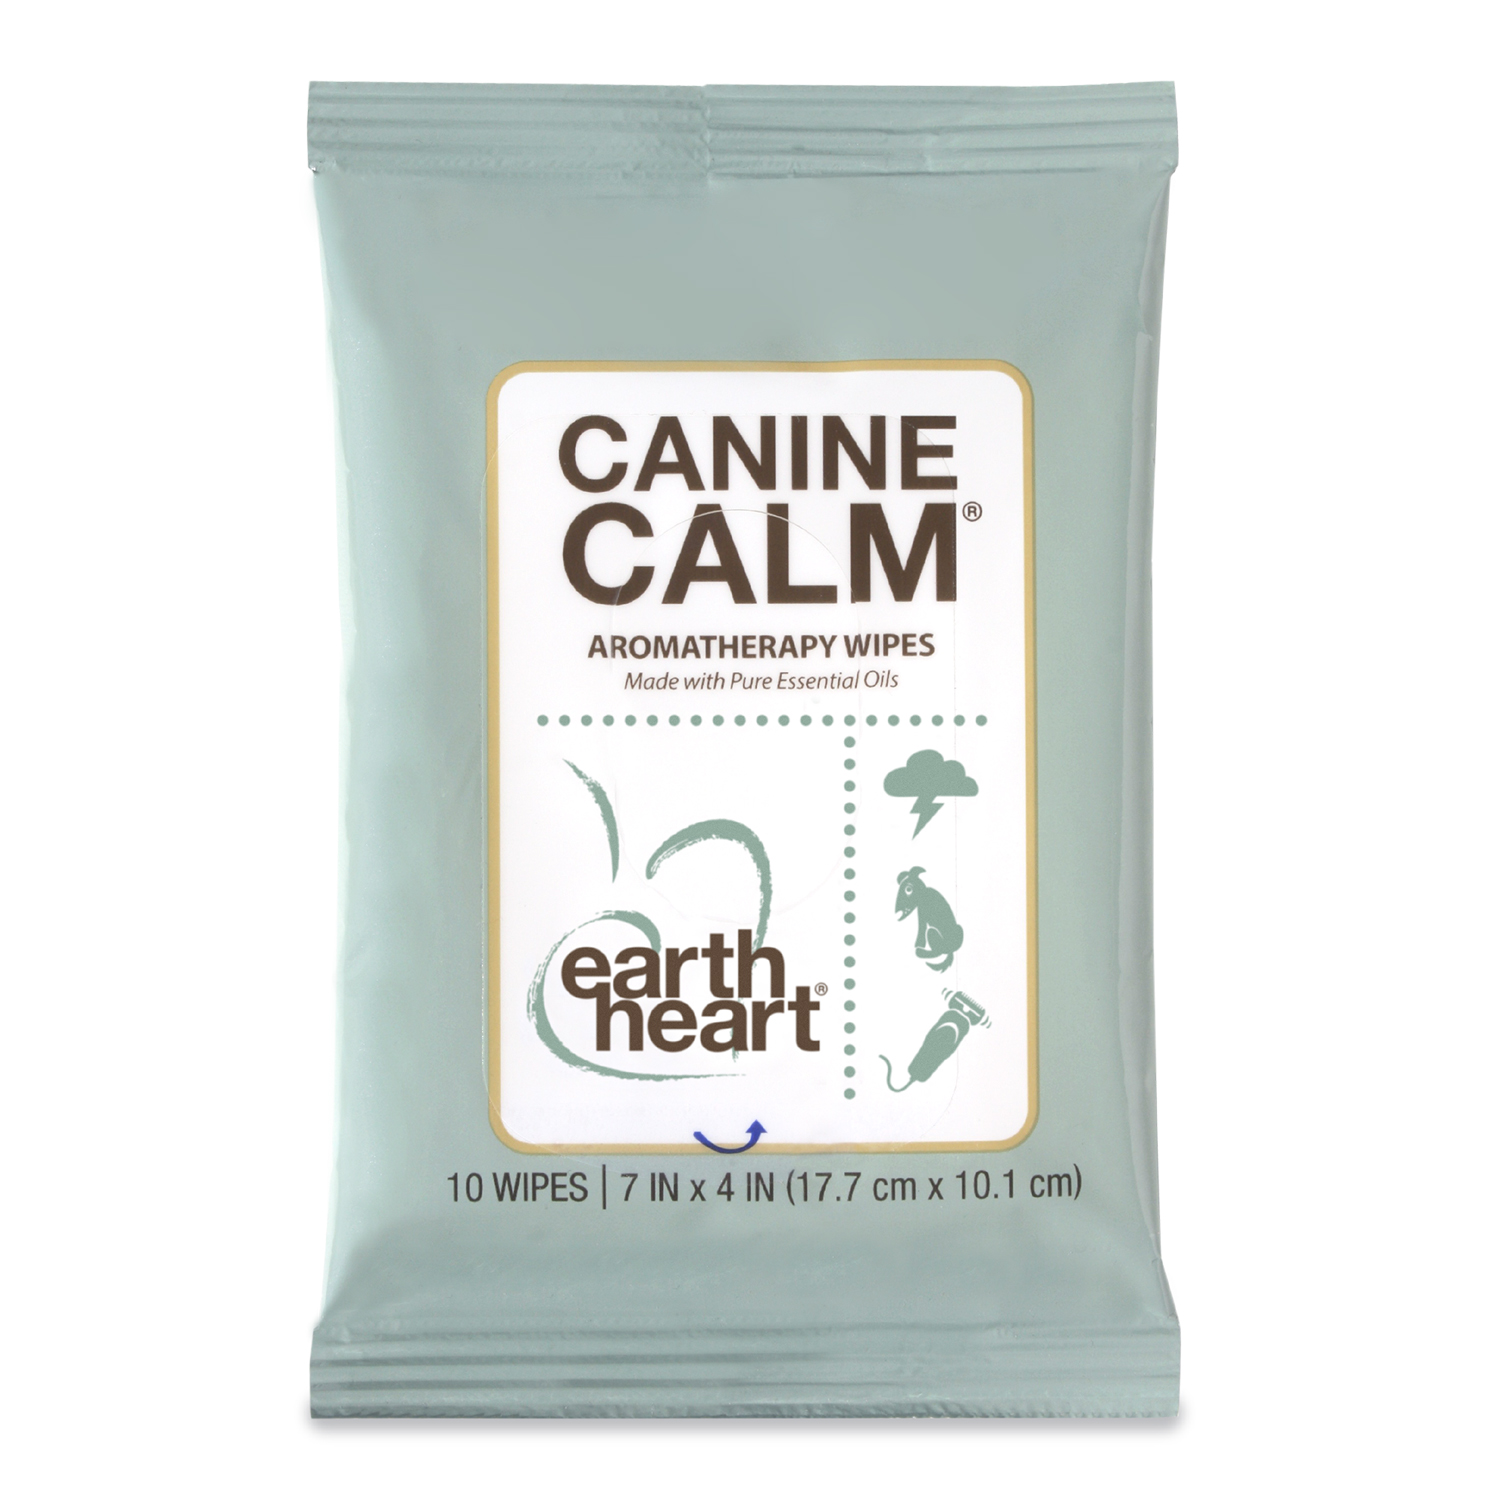 Earth Heart Inc. – Canine Calm Aromatherapy Wipes